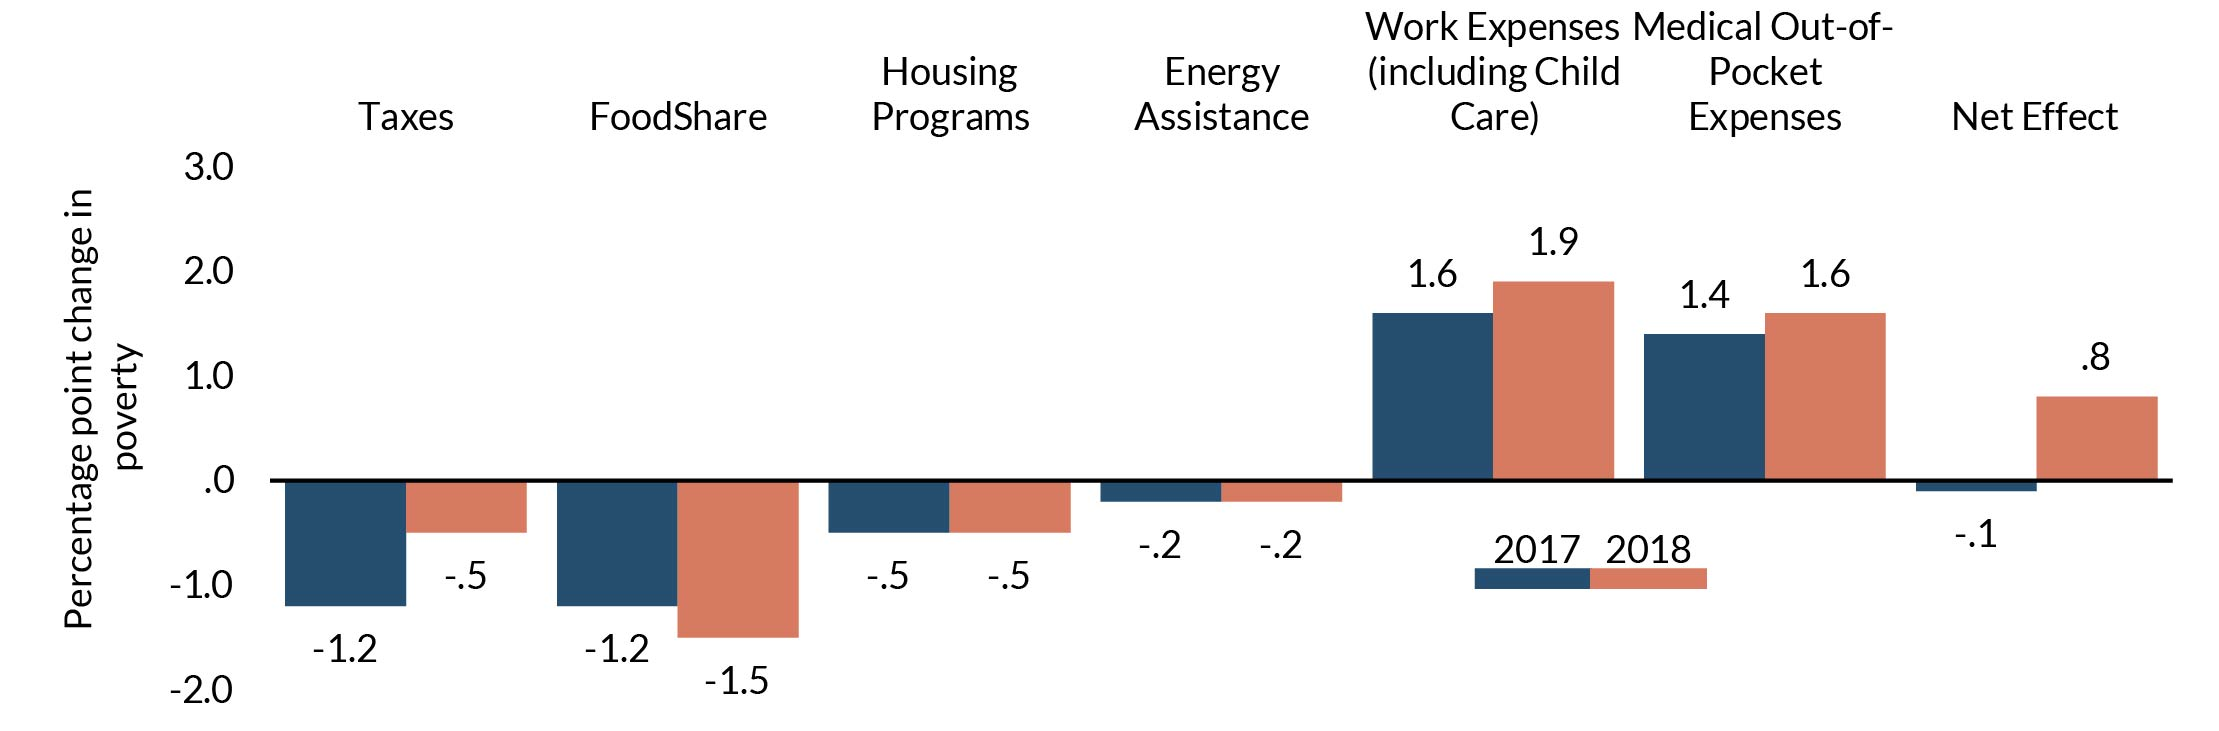 Compared to 2017, work and health expenses continued to increase, outpacing the benefits of safety net programs.